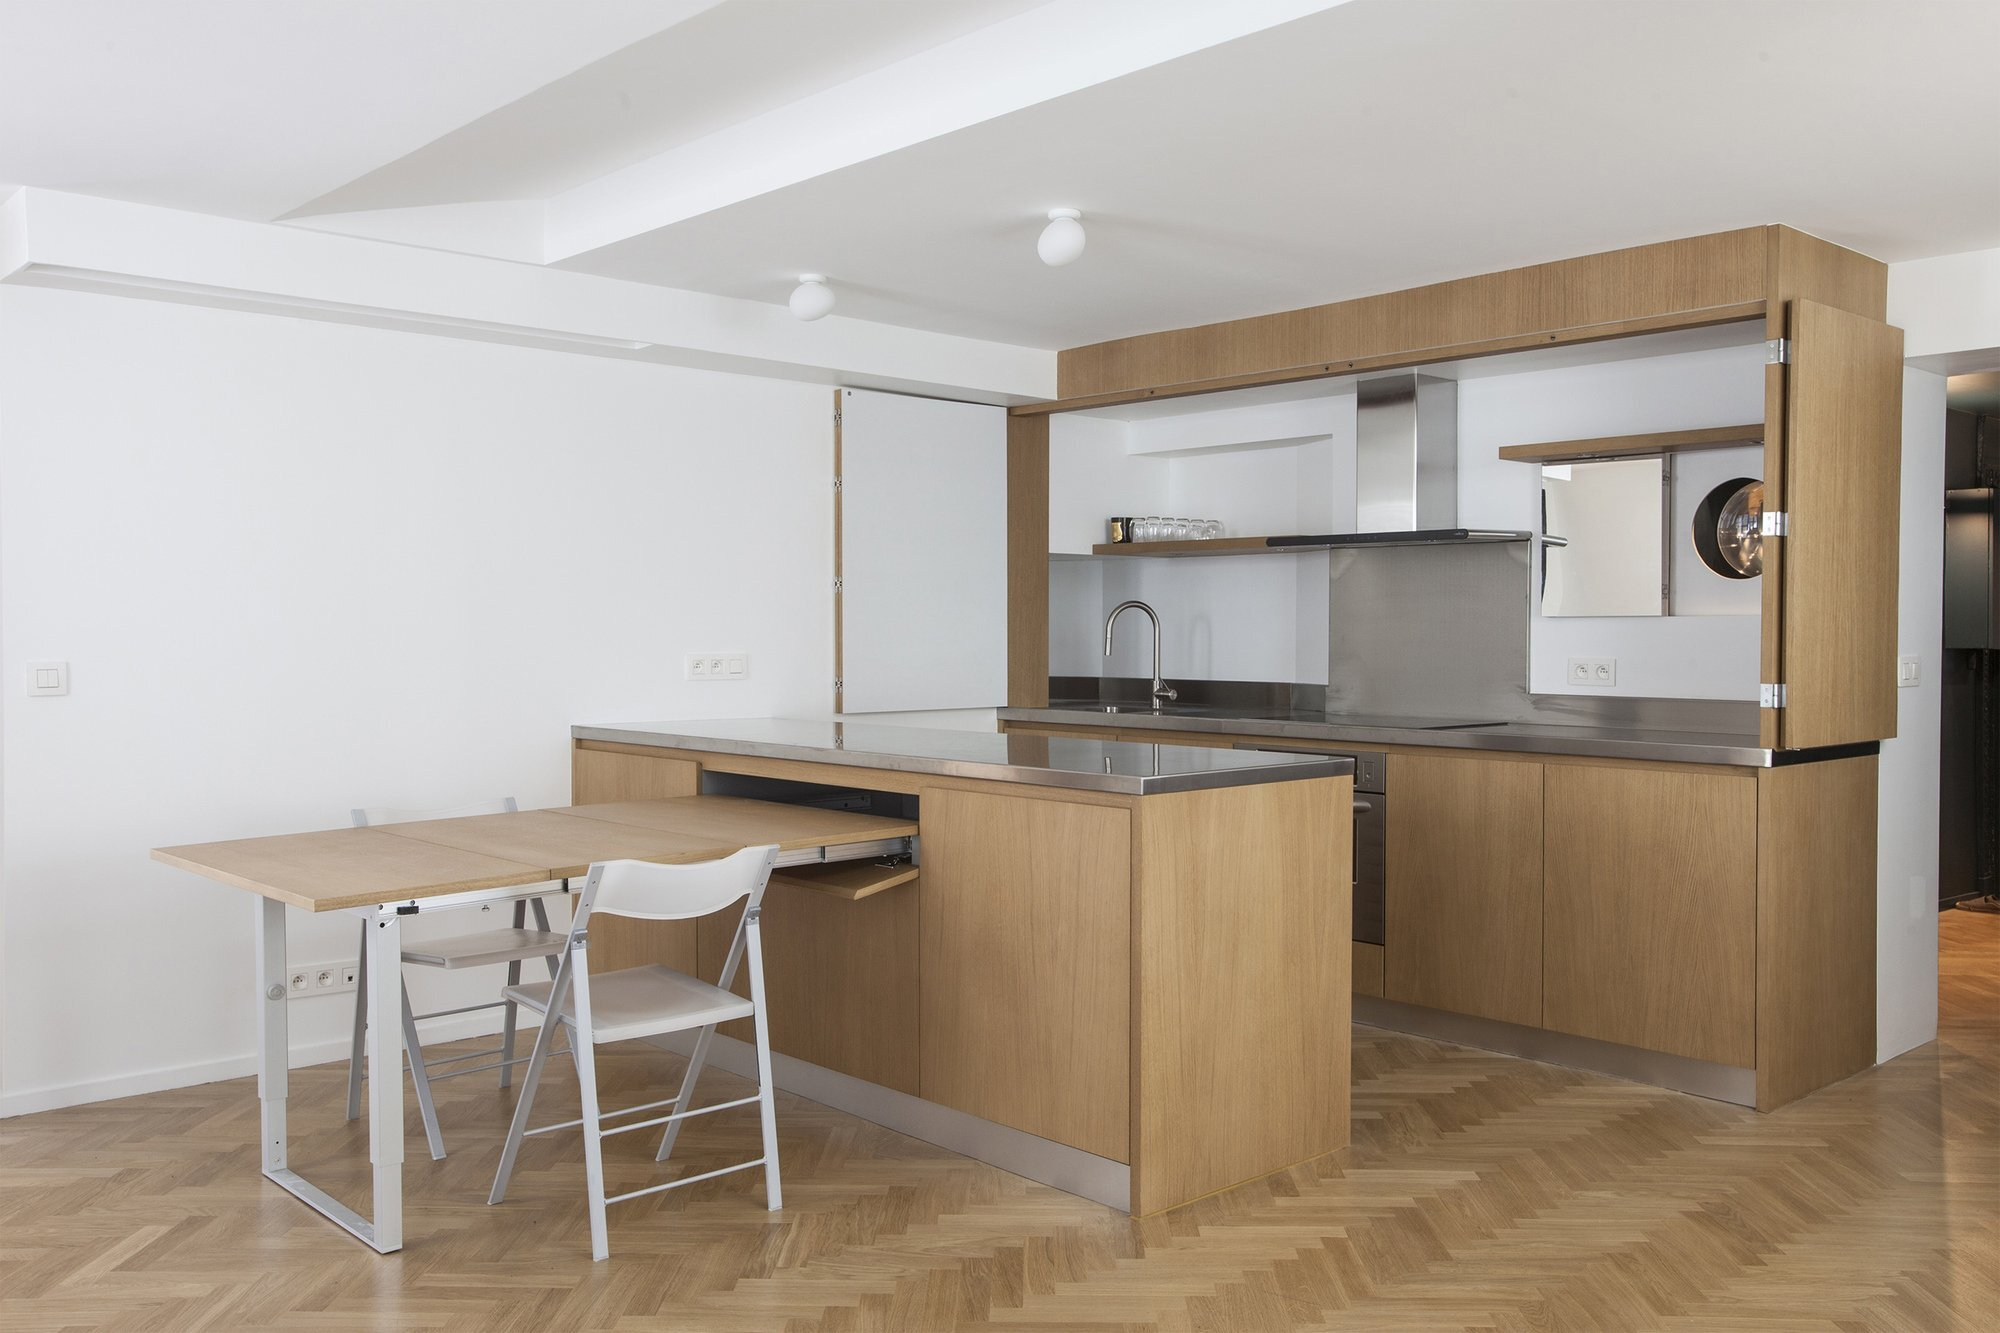 Apartment Remodel - Alia Bengana - Paris - Kitchen Open - Humble Homes